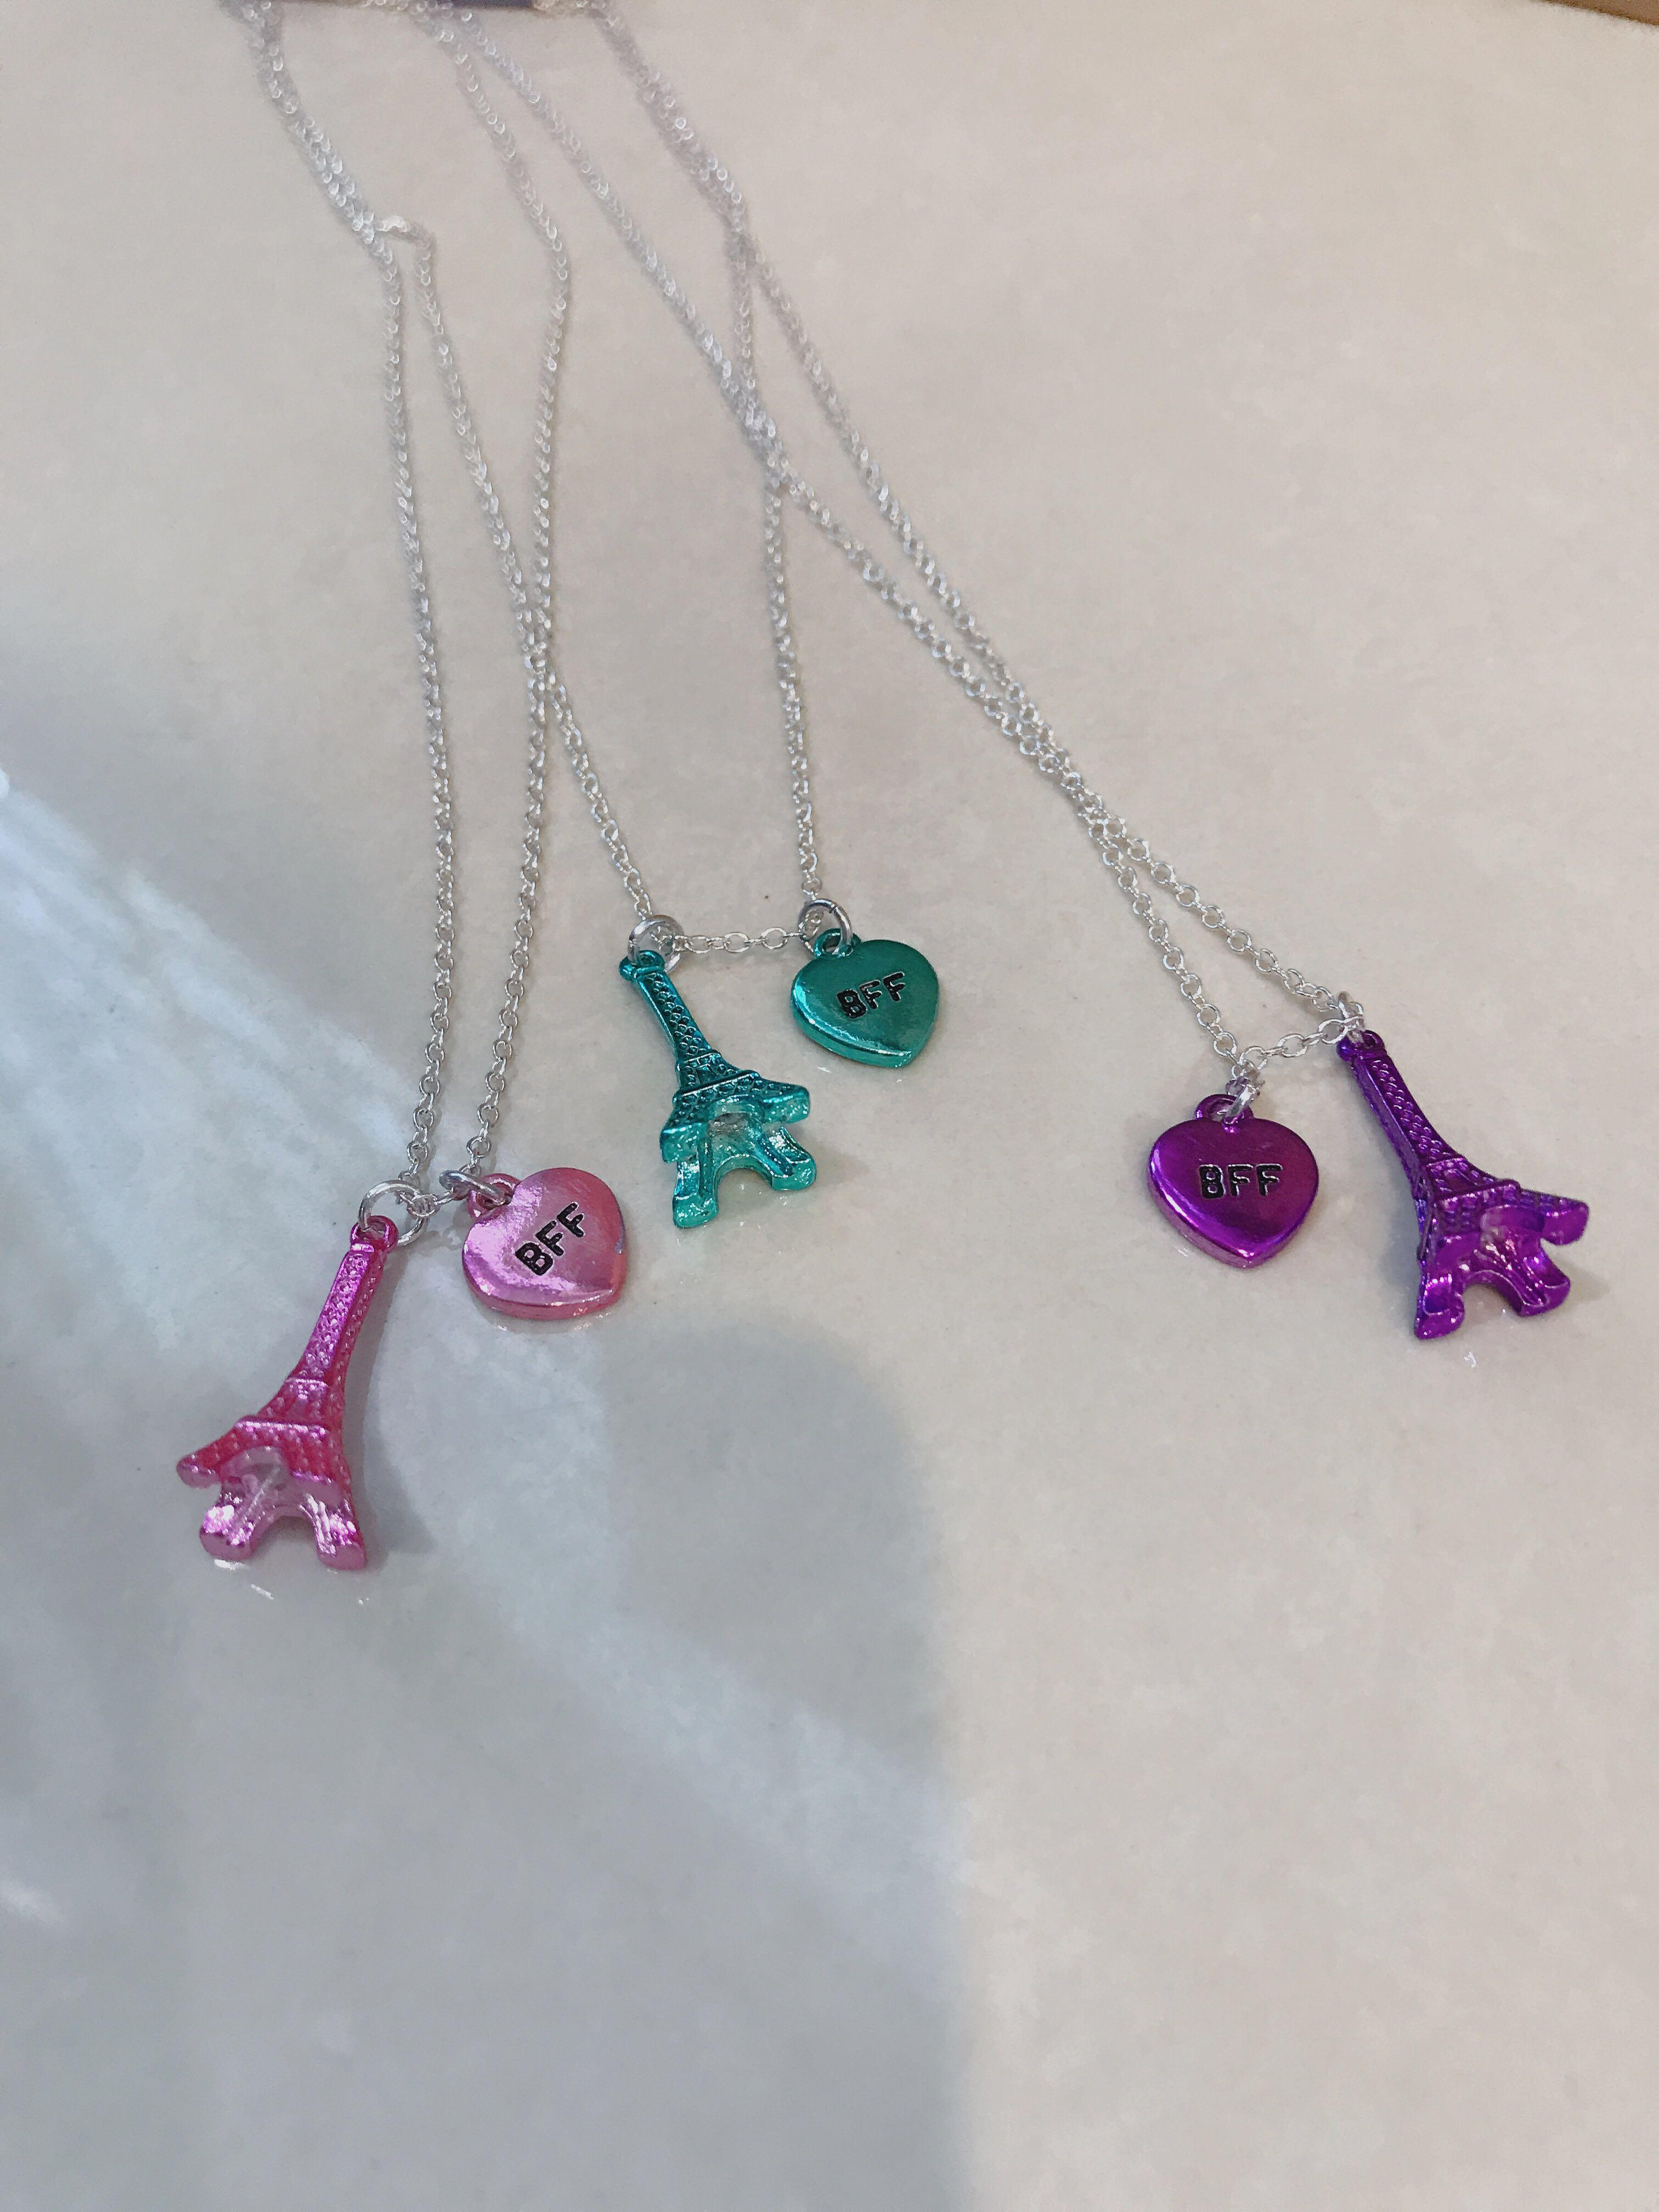 Claire's Women Cute Kids Bff Best Friend Forever Pink, Purple And Mint Green Tiffany Blue Eiffel Paris Tower Friendship Colorful Necklace Set 3 in 1